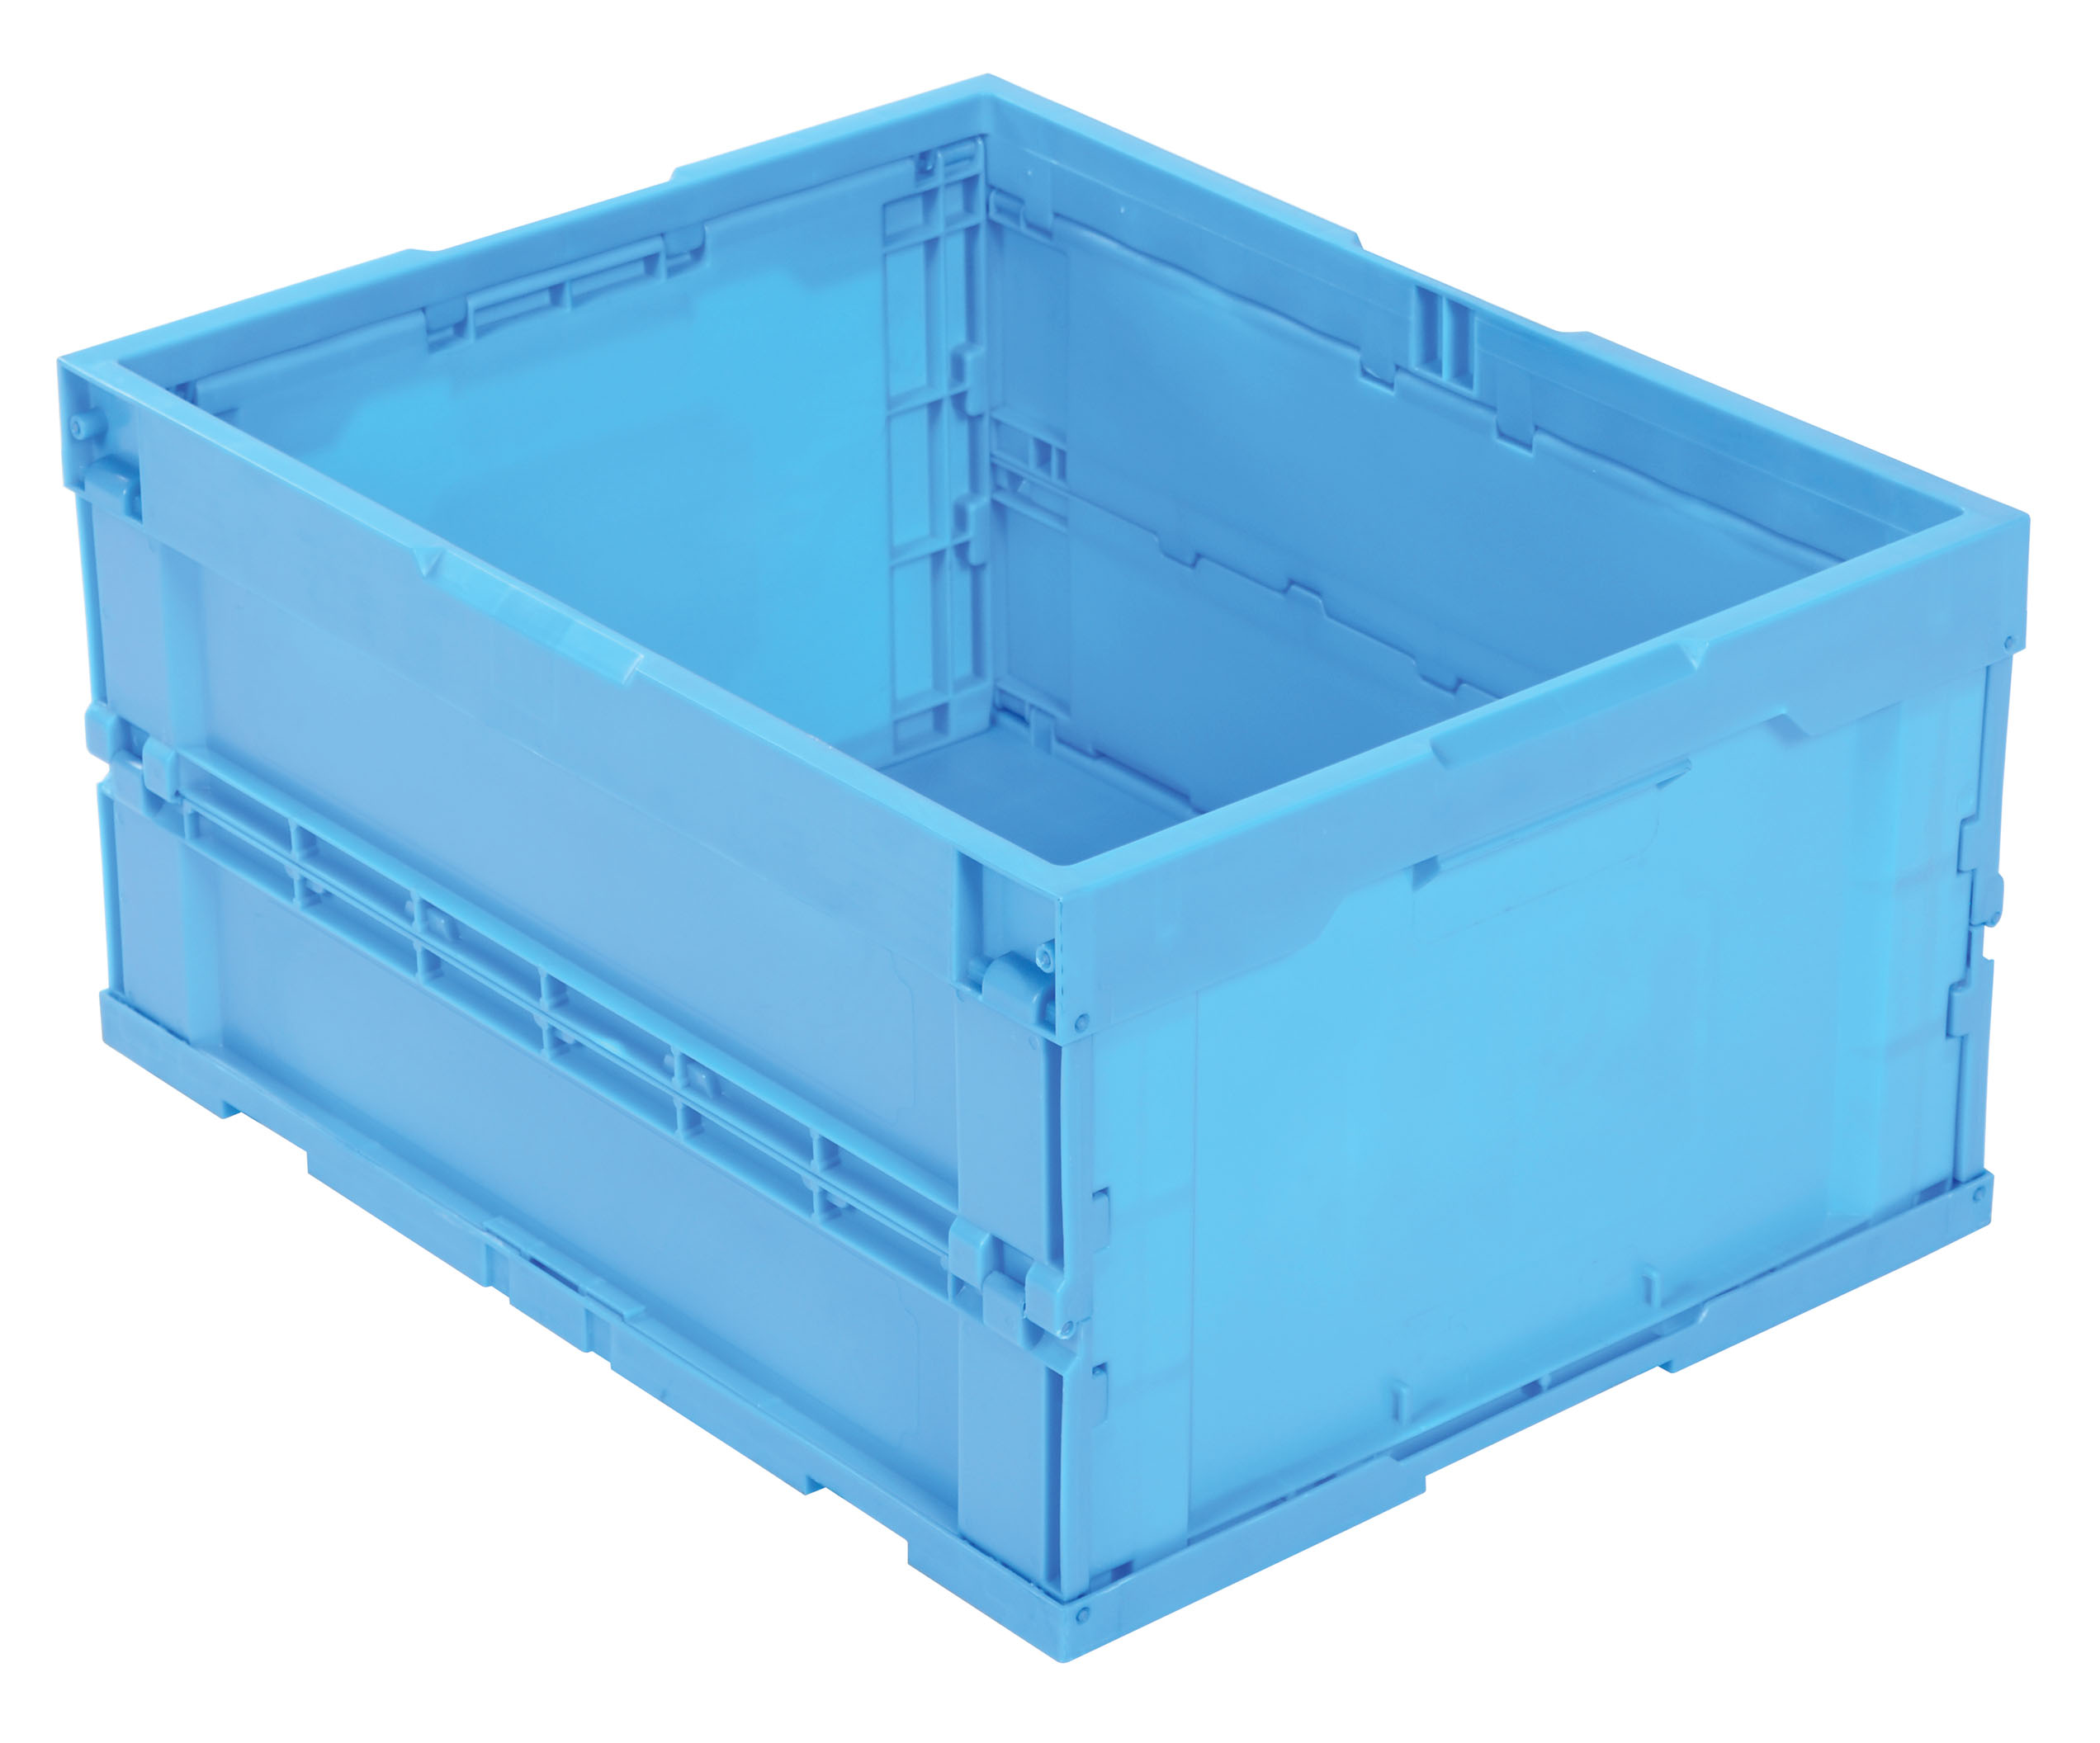 Vestil F-CRATE Folding Plastic Container